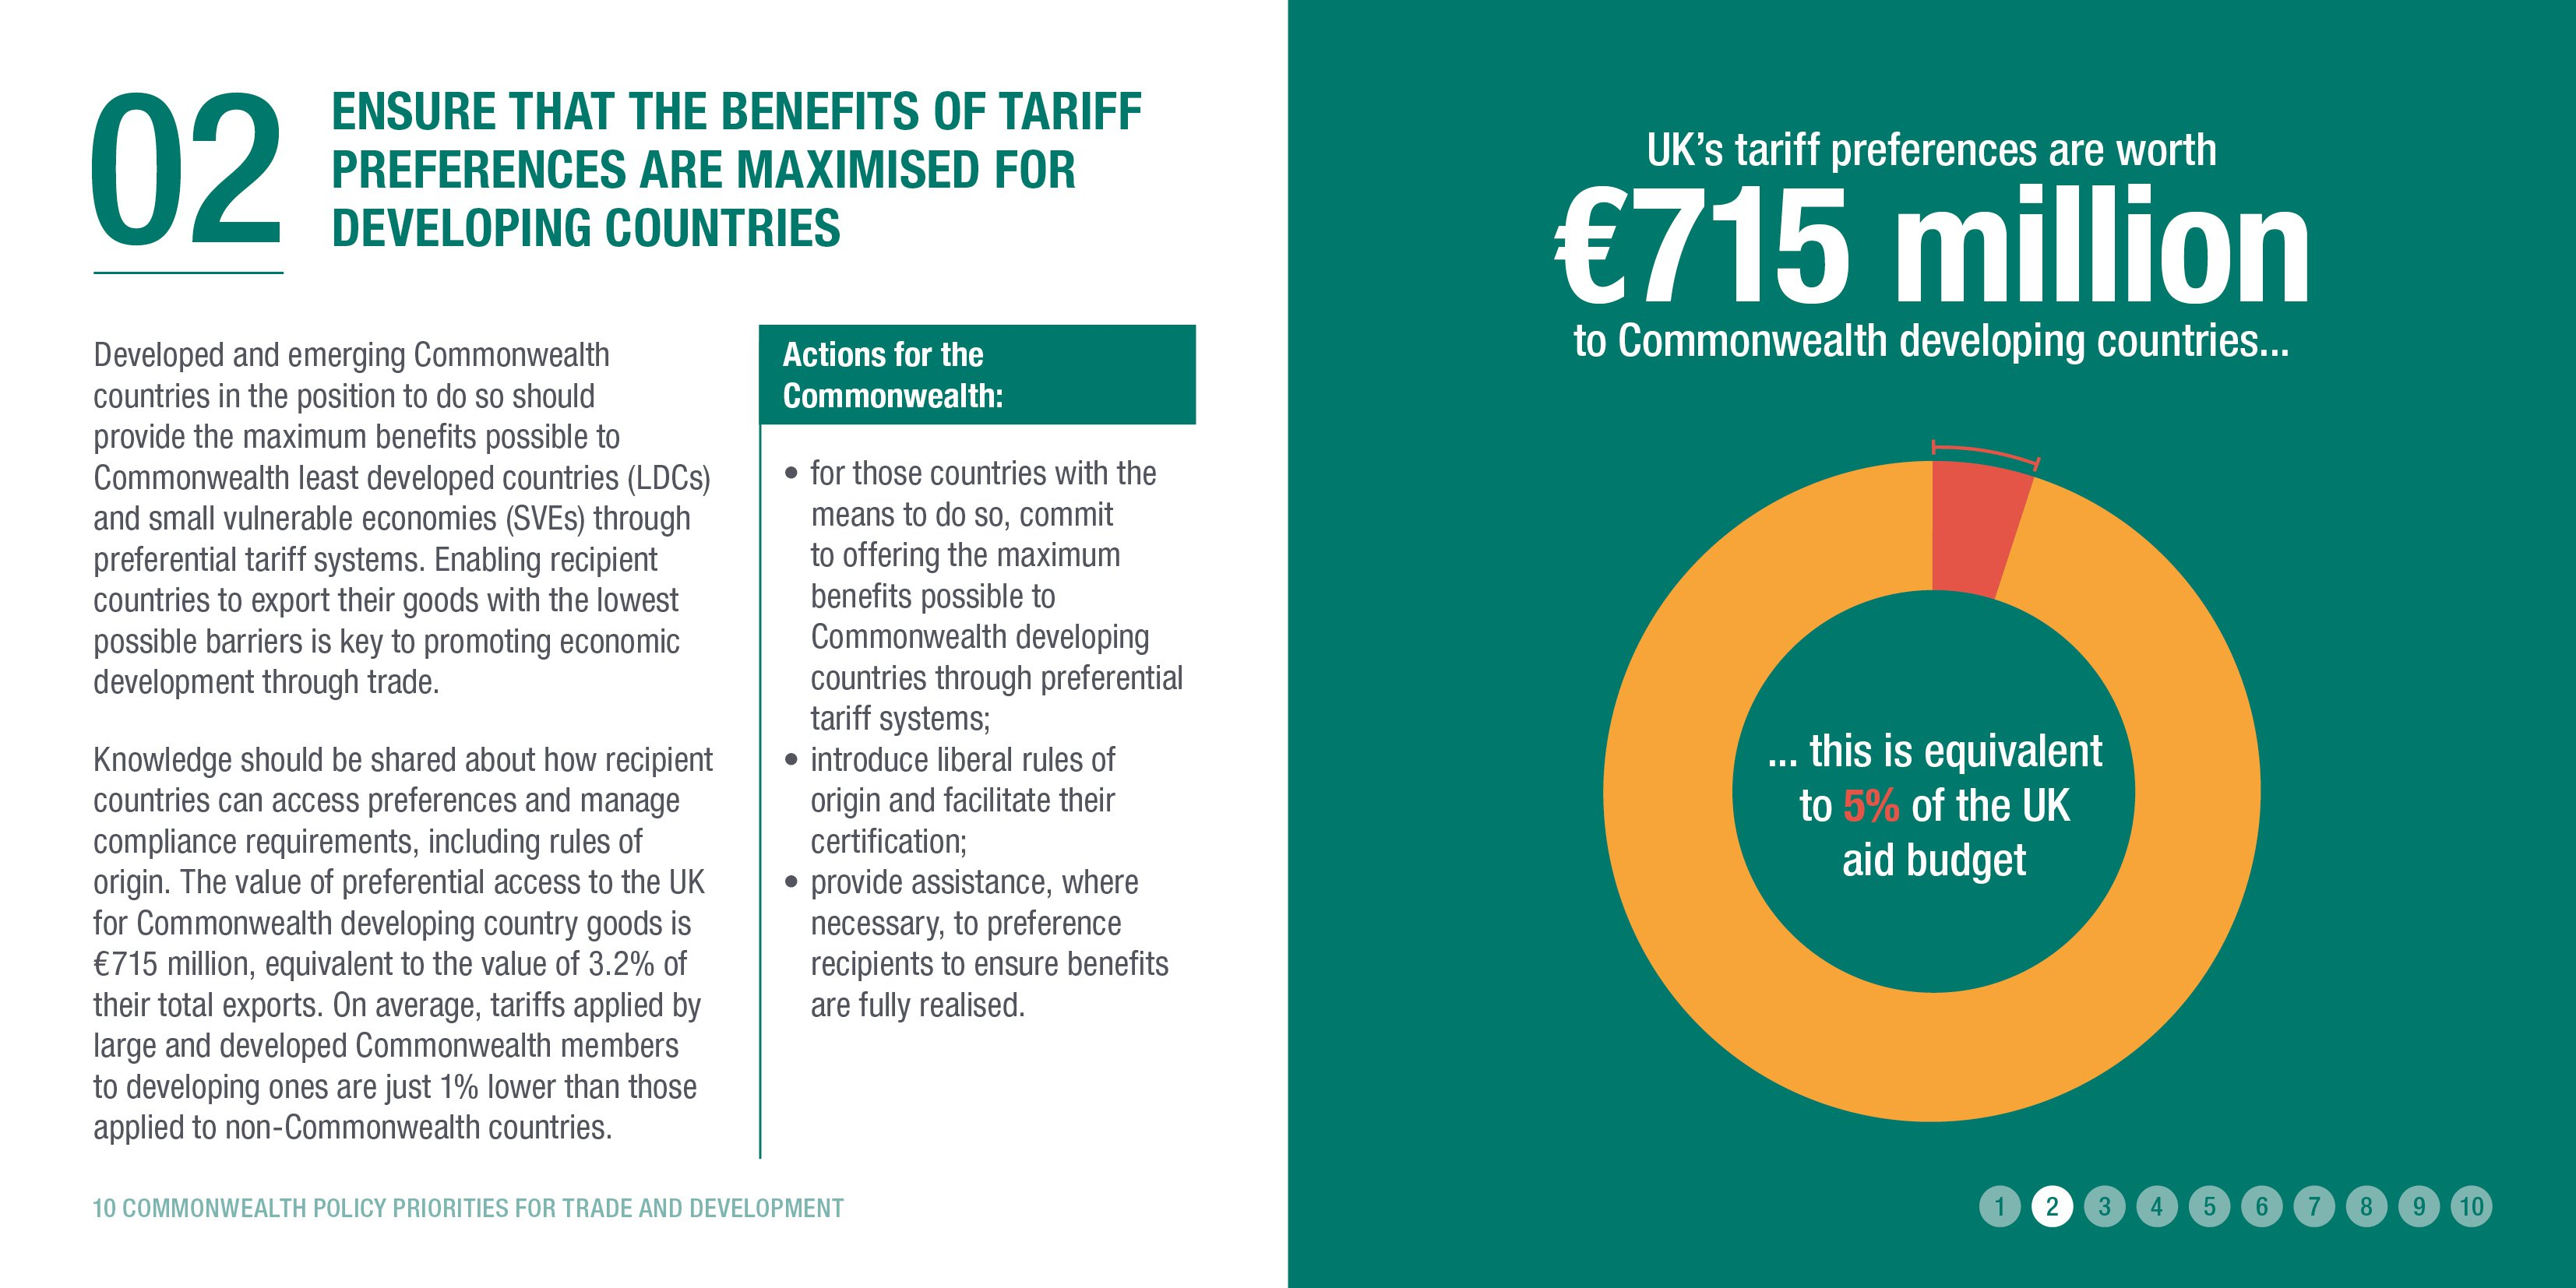 Ensure that the benefits of tariff preferences are maximised for developing countries